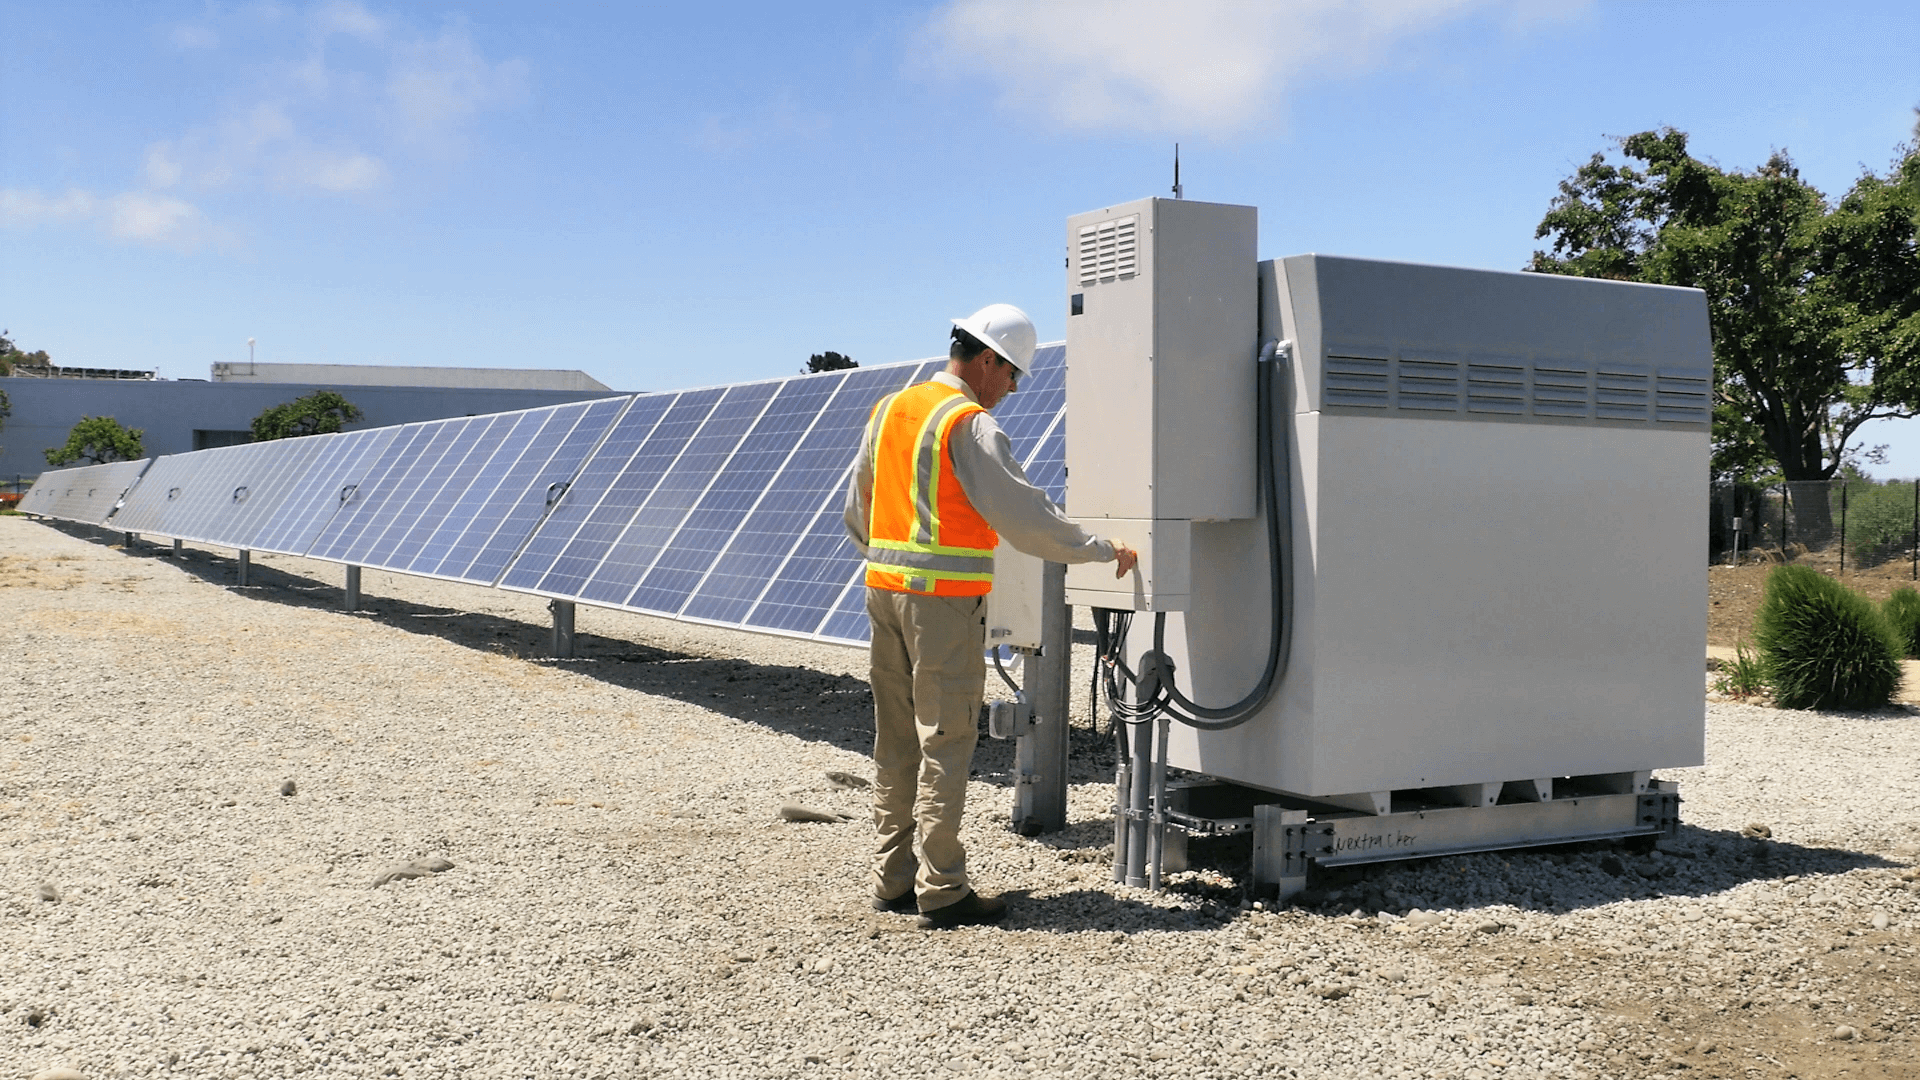 Electric Control Panels are Good for Large Solar Project